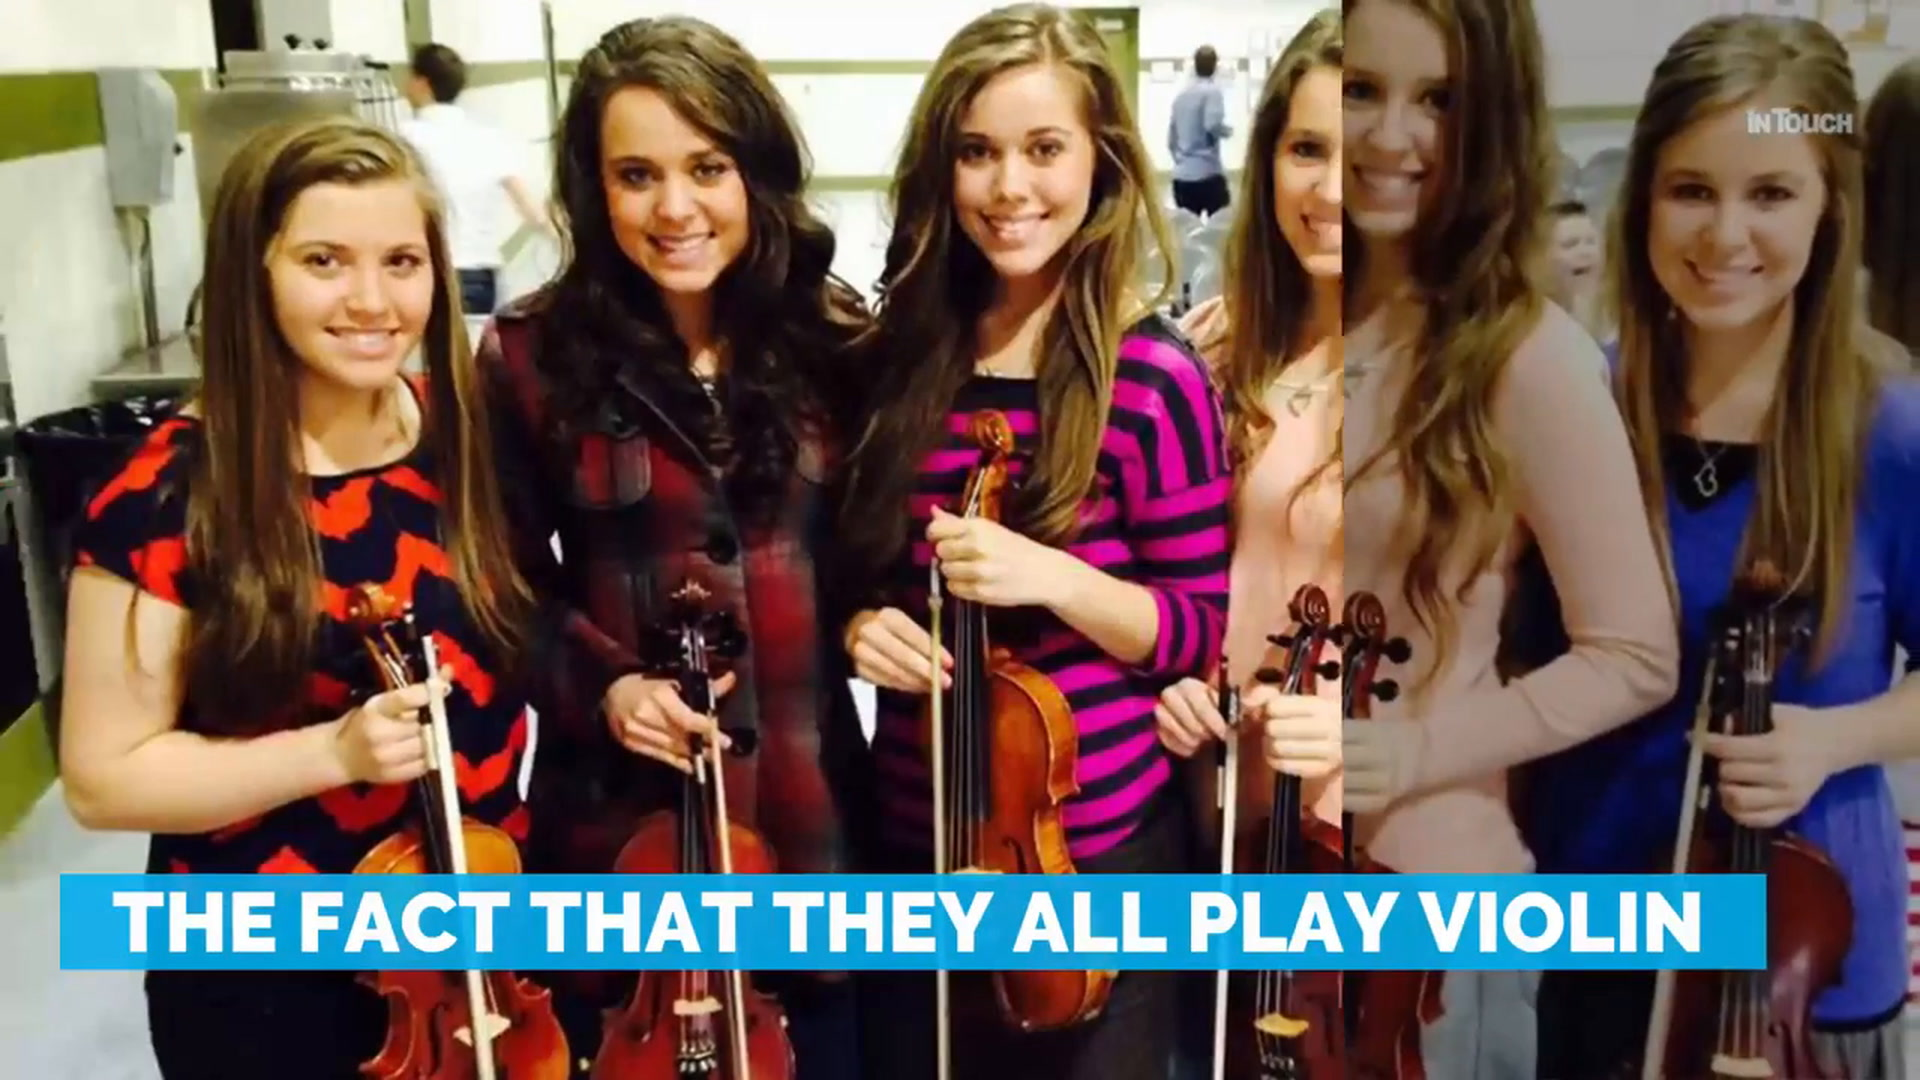 Fans Just Noticed How The Duggar Girls Sit The Exact Same Way